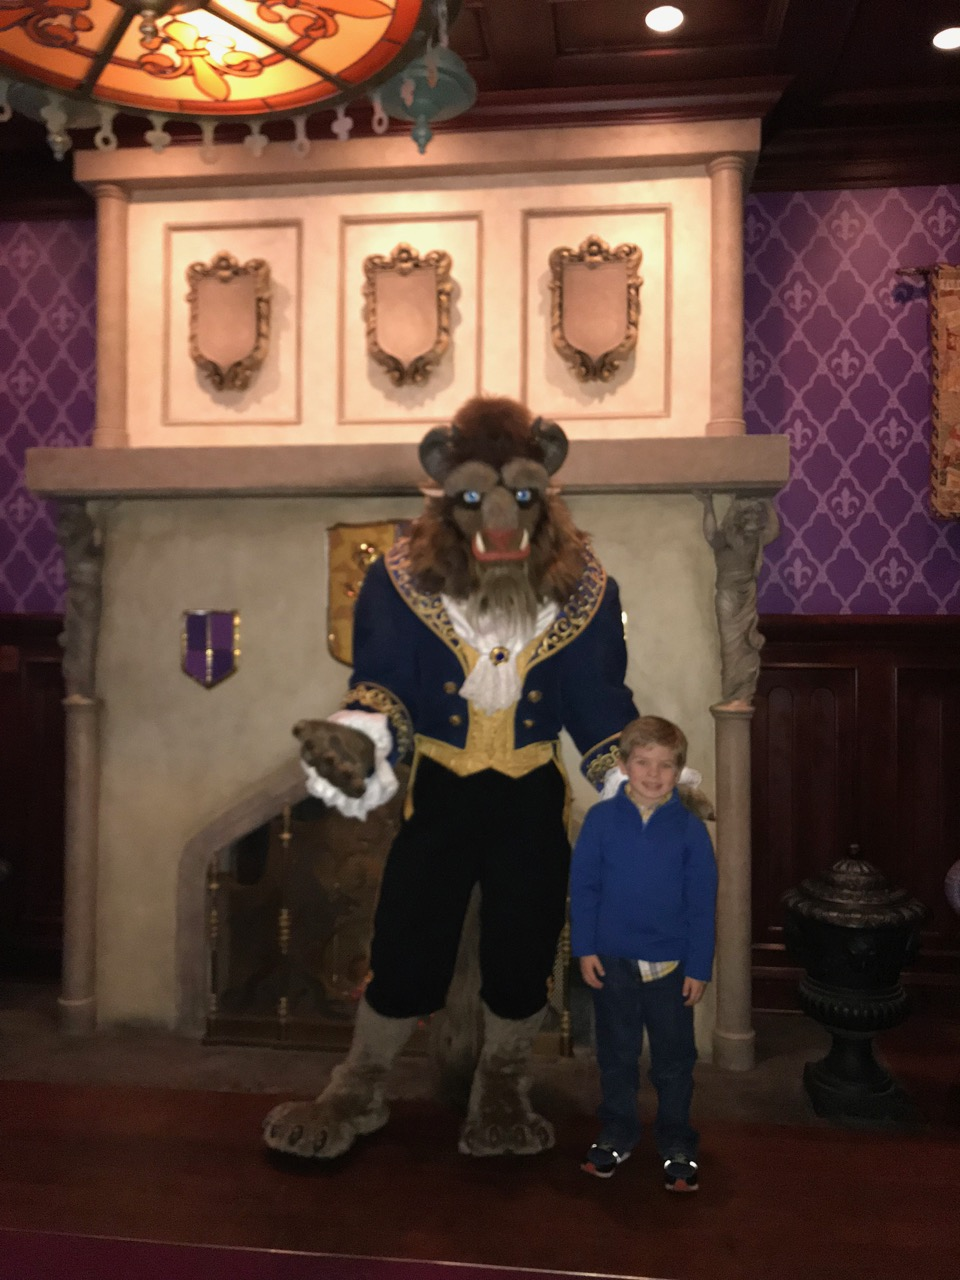 Magic Kingdom - Be Our Guest Restaurant